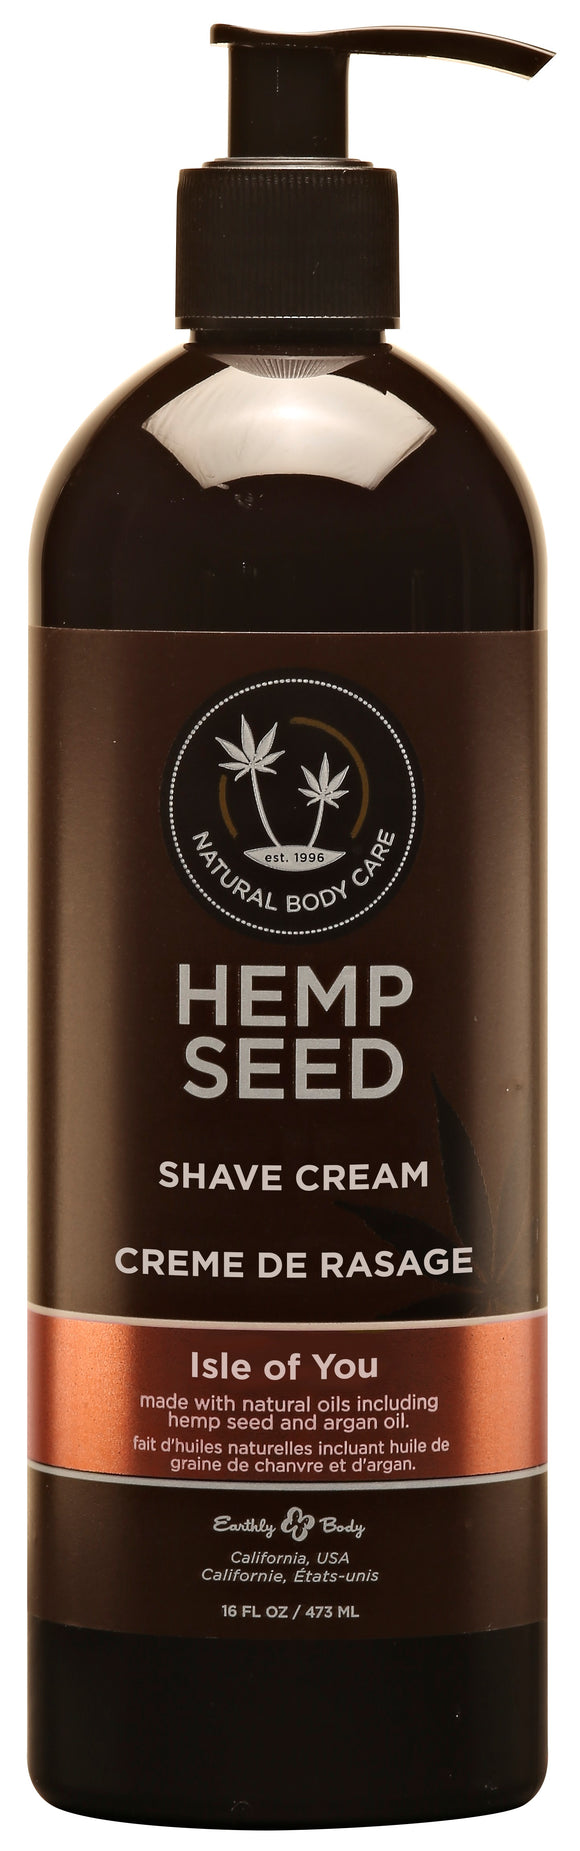 Hemp Seed Shave Cream - Isle of You 16oz EB-HSSK252